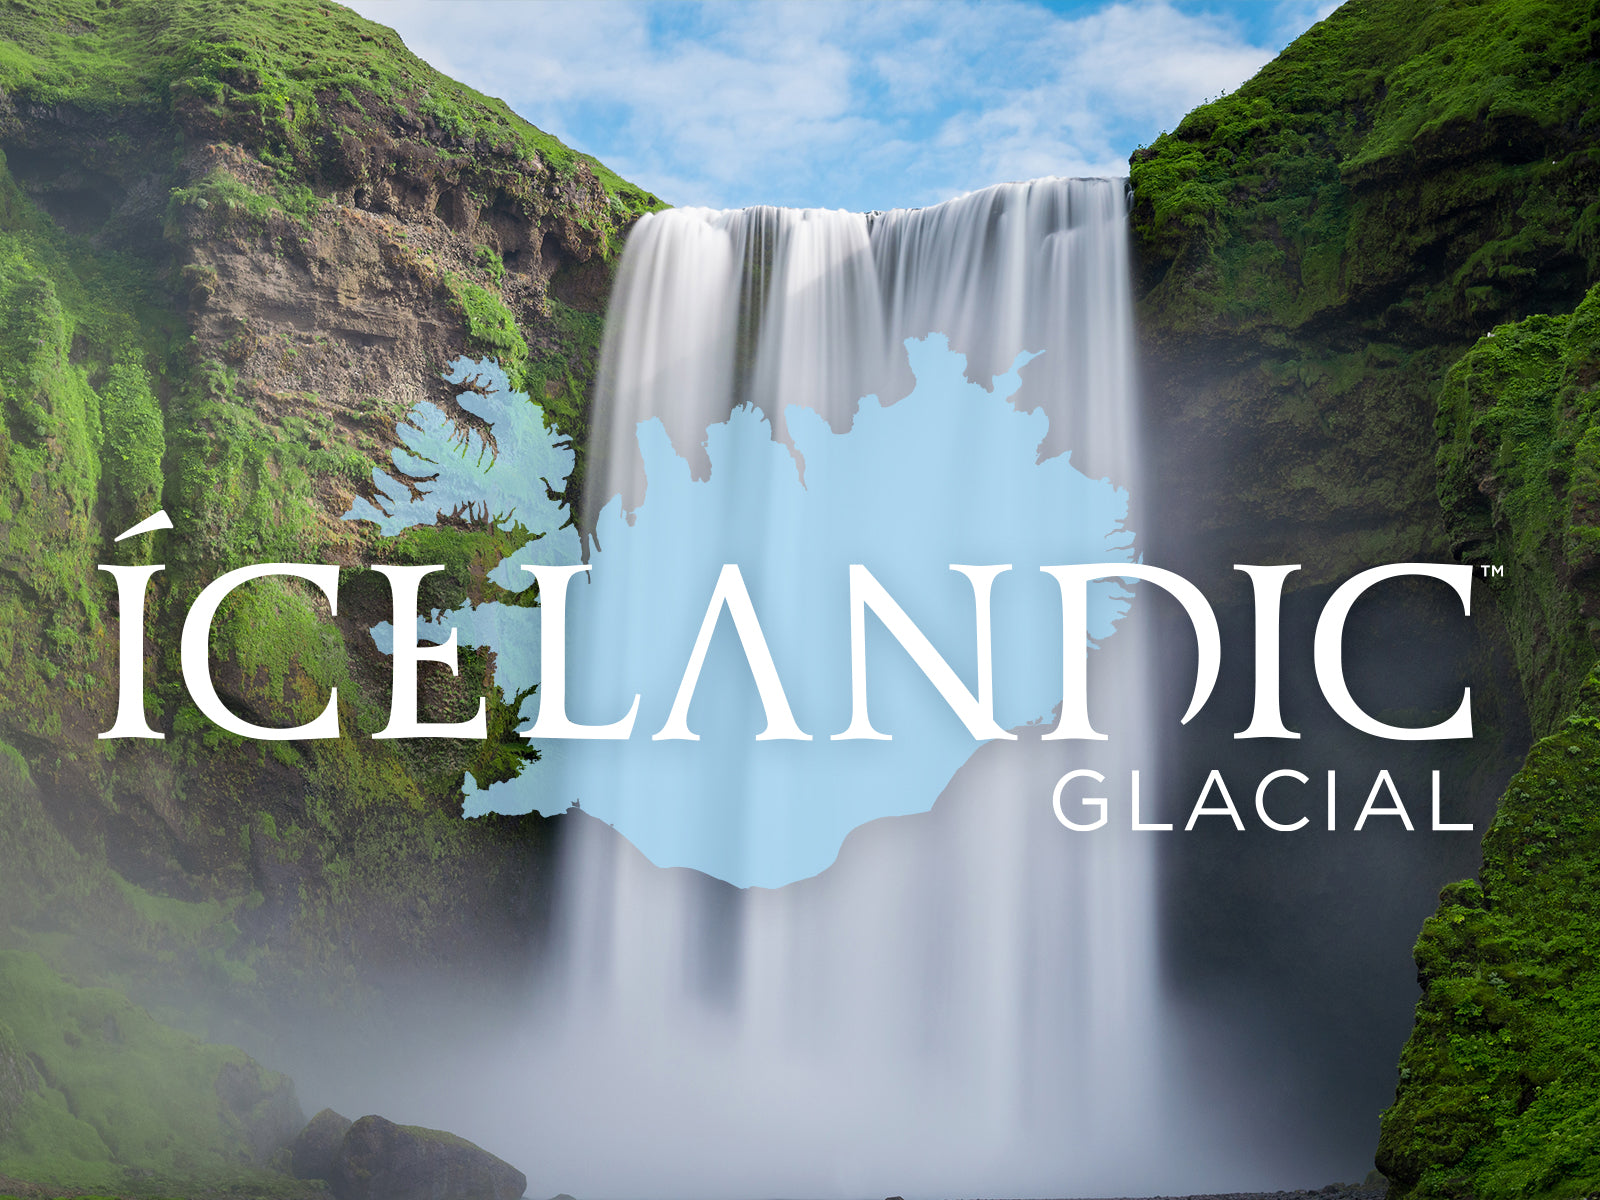 Icelandic Glacial Announces New Sustainability Initiative